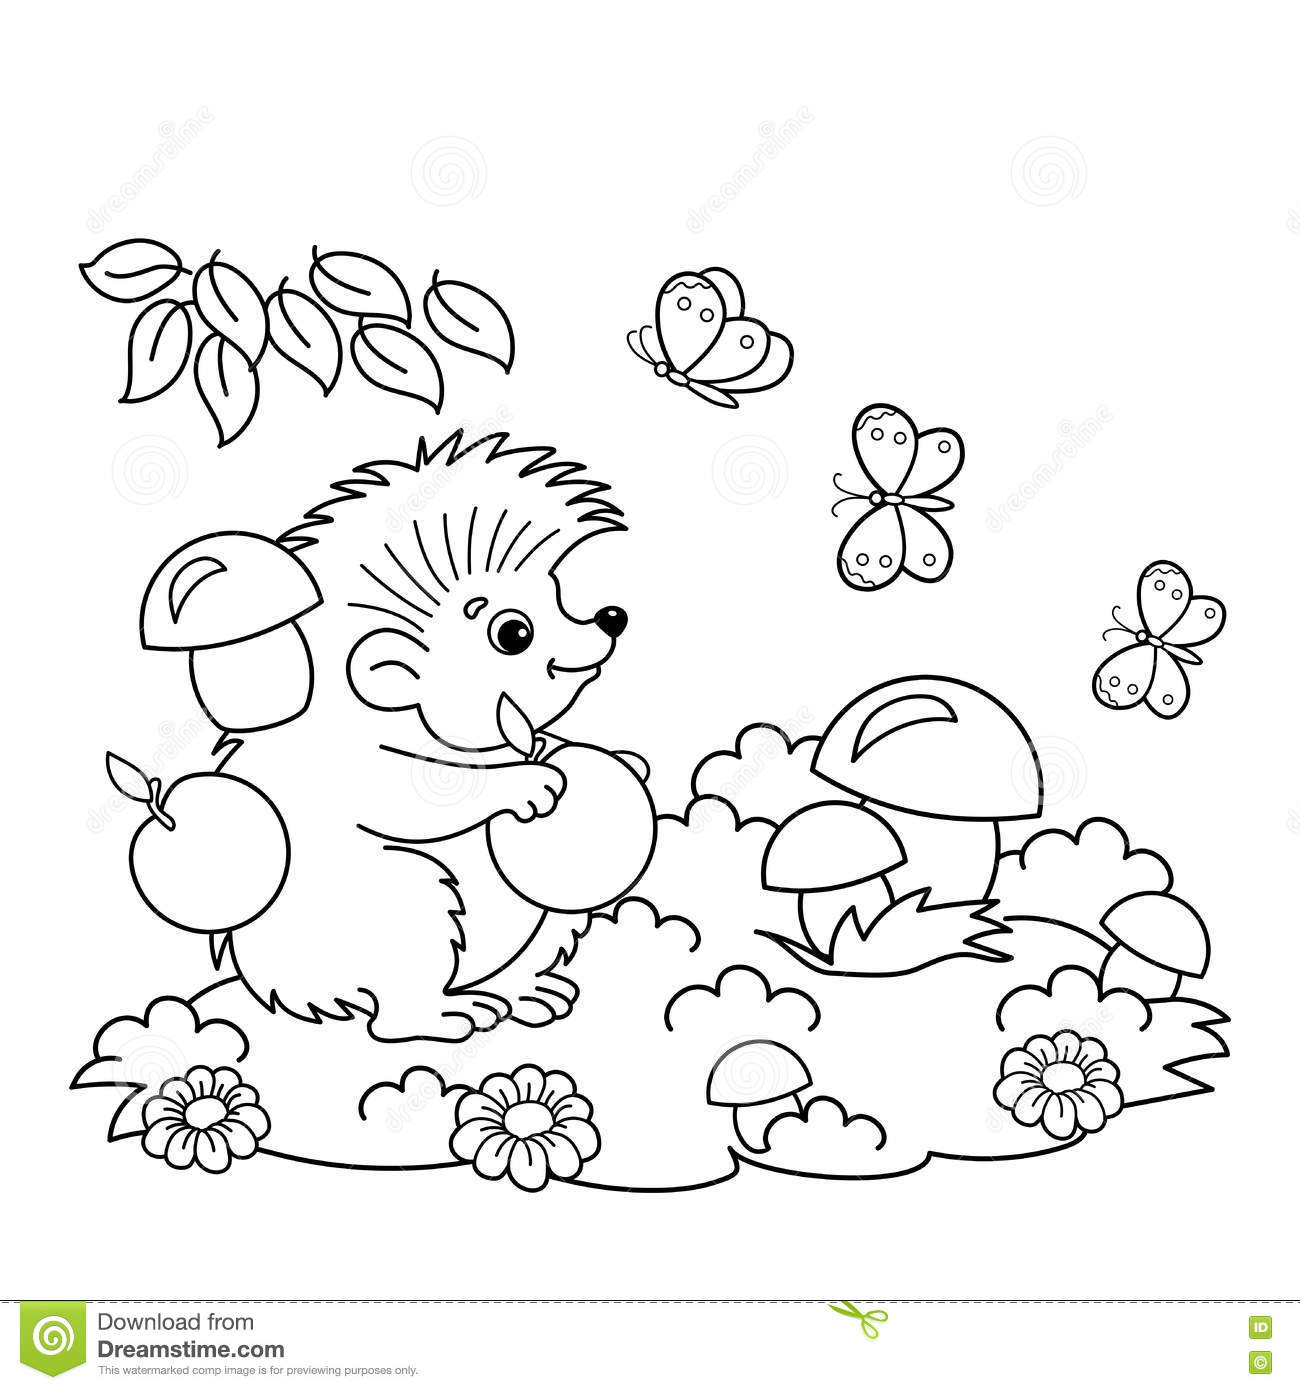 coloring page outline of cartoon hedgehog with apples and